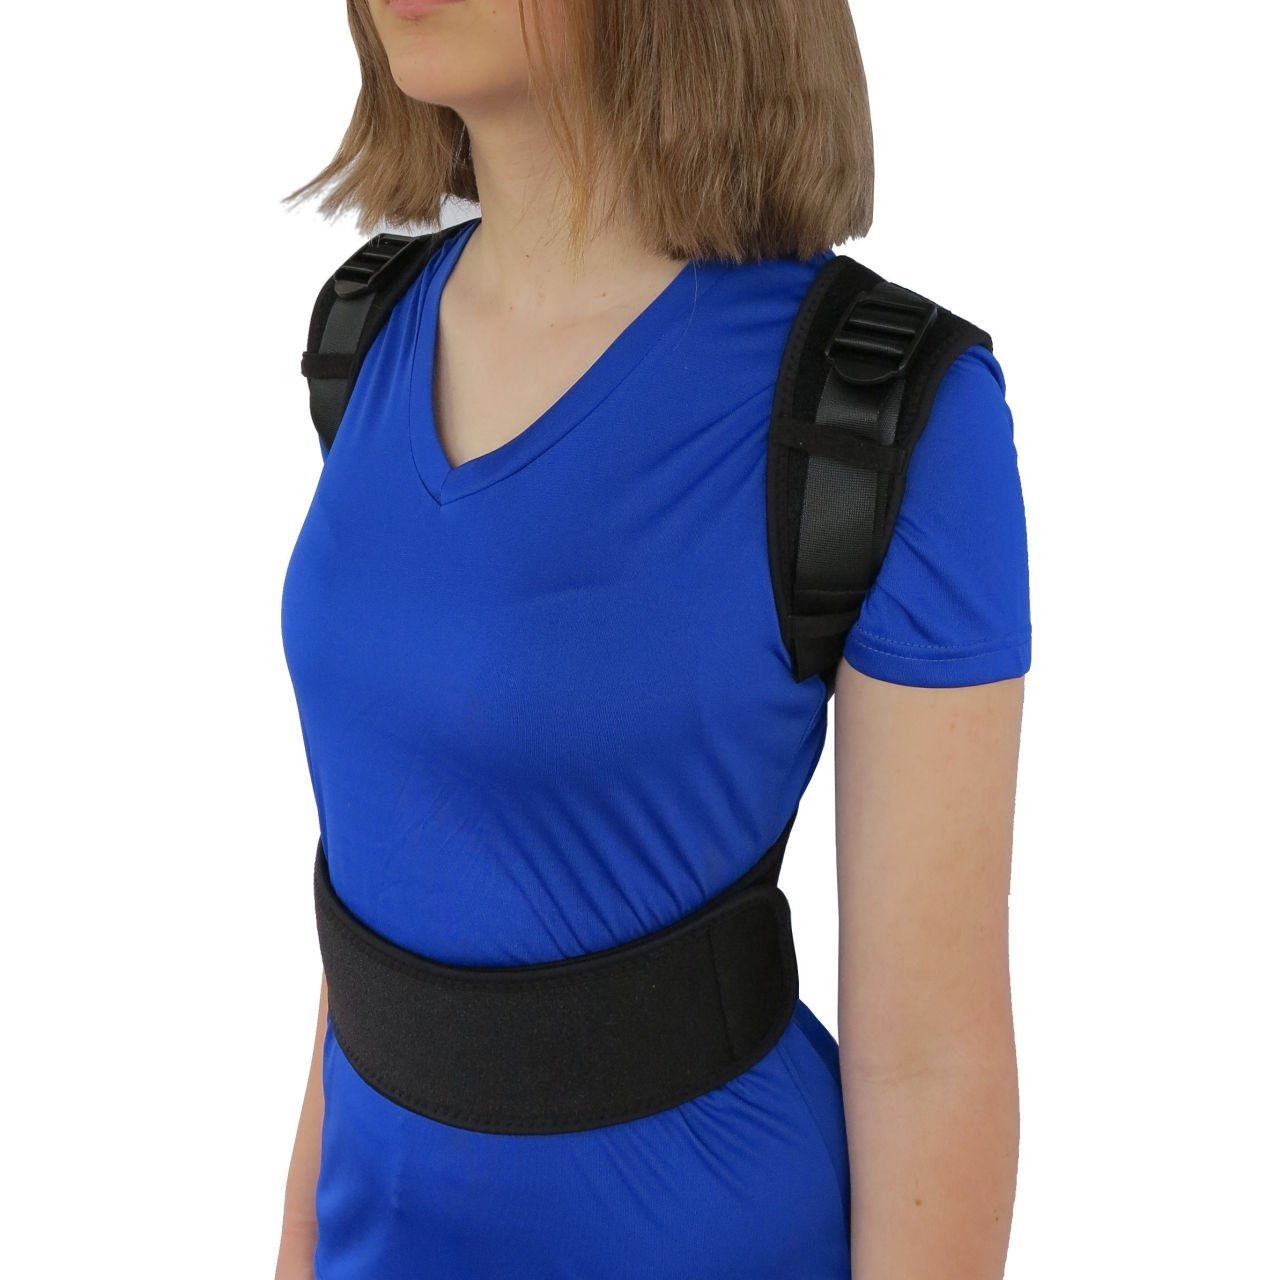 ComfyMed Posture Corrector Clavicle Support Brace CM-PB16